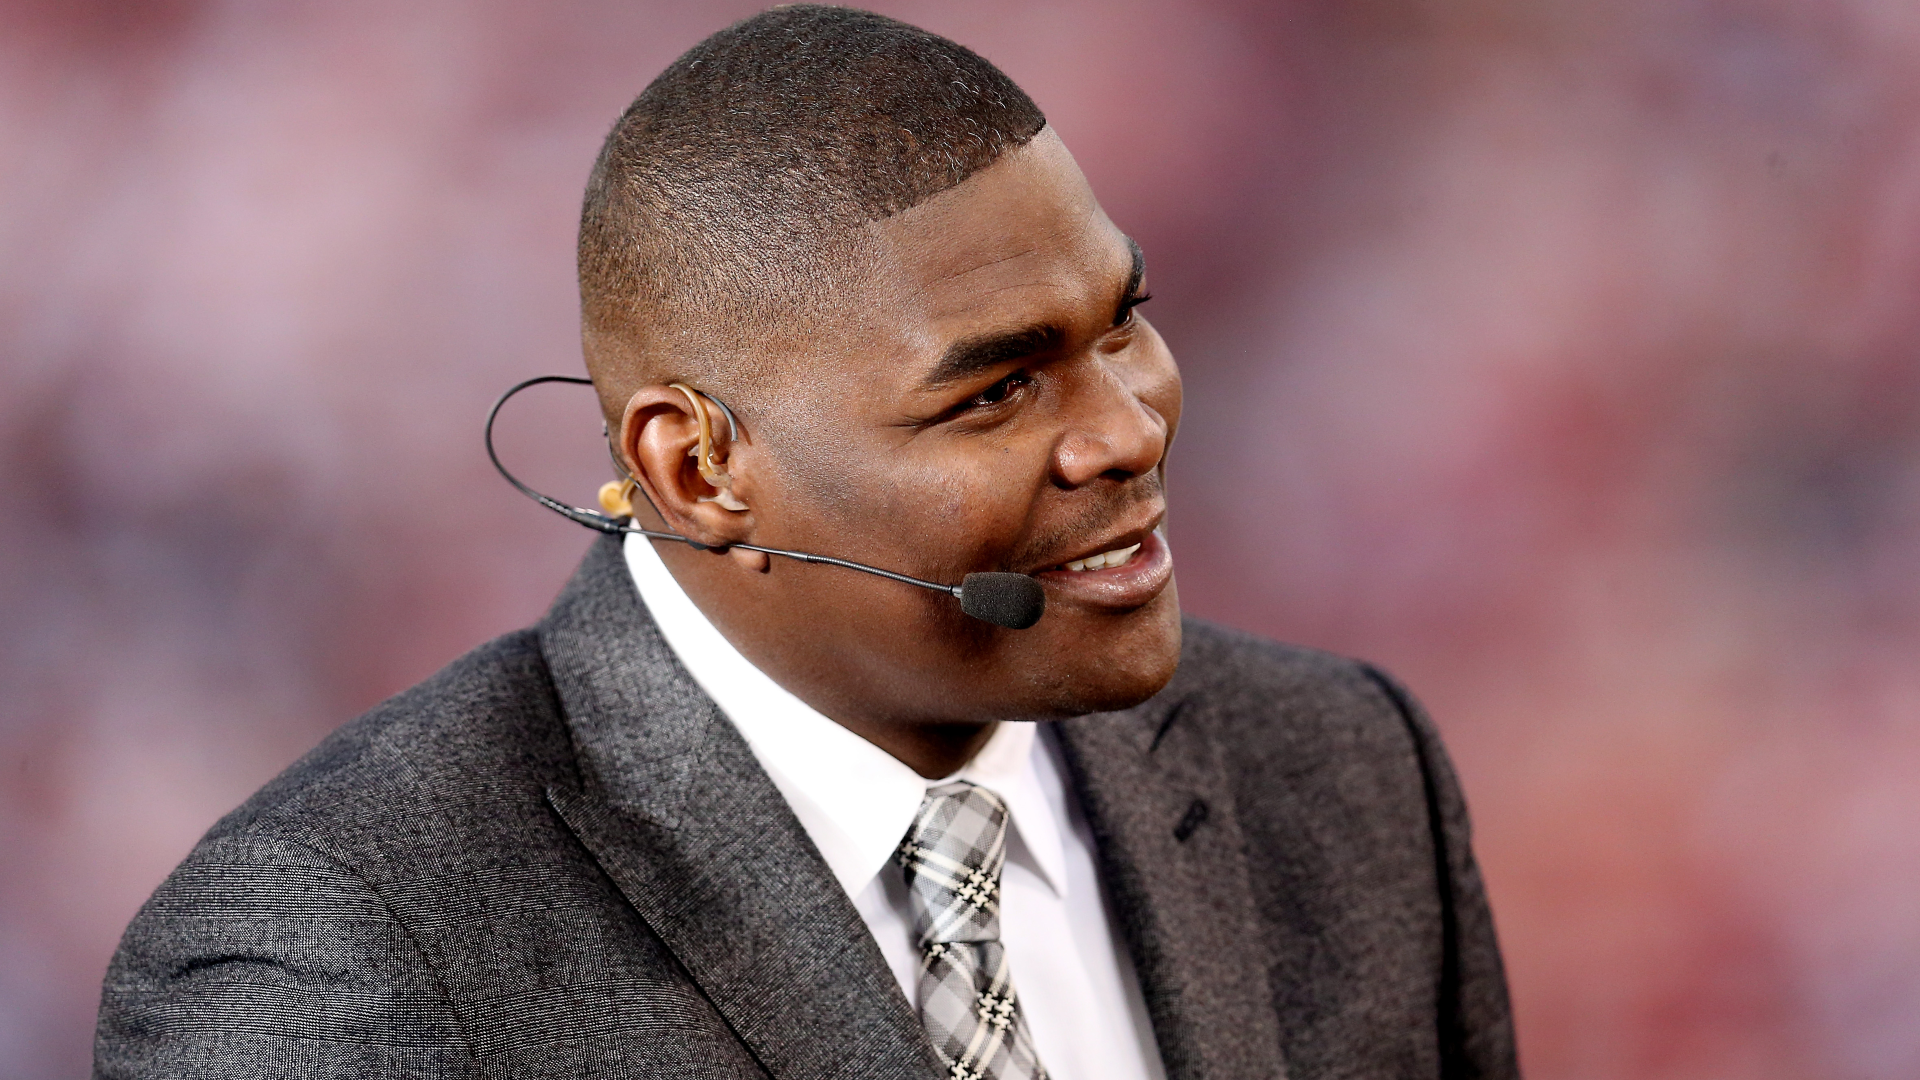 Keyshawn Johnson blasts Jon Gruden over emails: Former Buccaneers receiver says coach has 'always been a fraud'